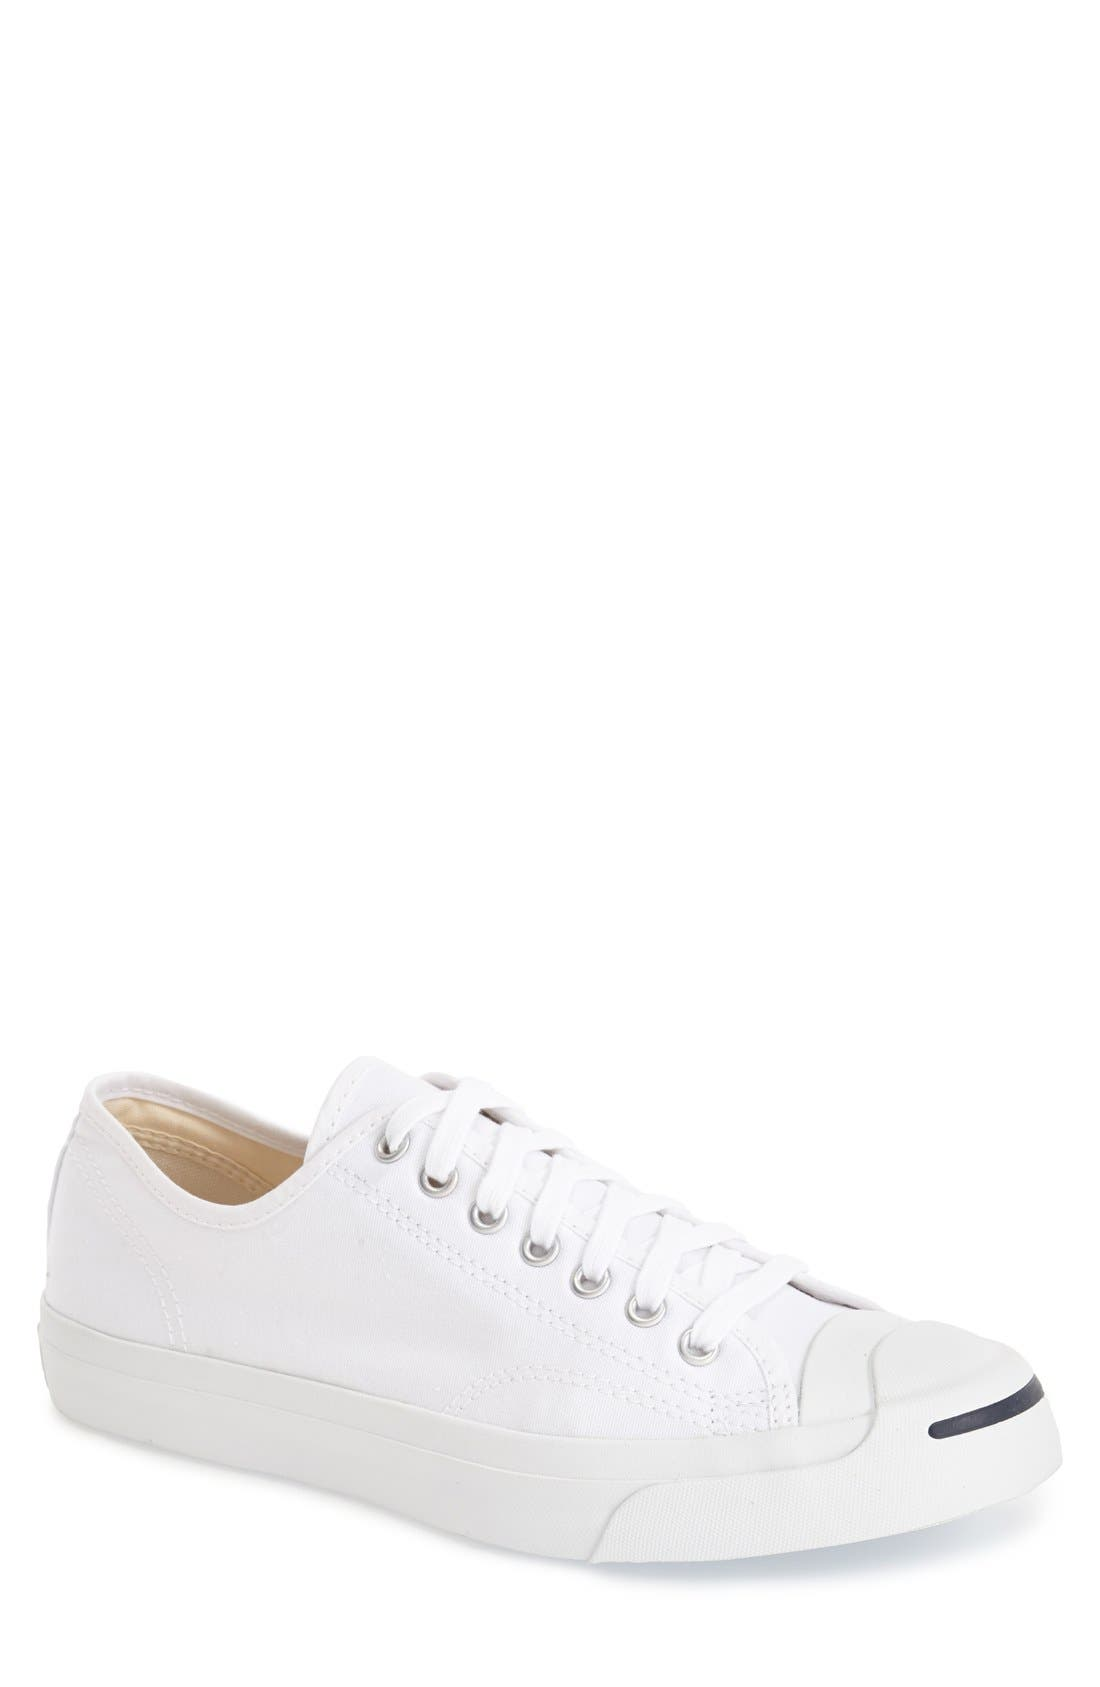 Alternate Image 1 Selected - Converse 'Jack Purcell' Sneaker (Men)